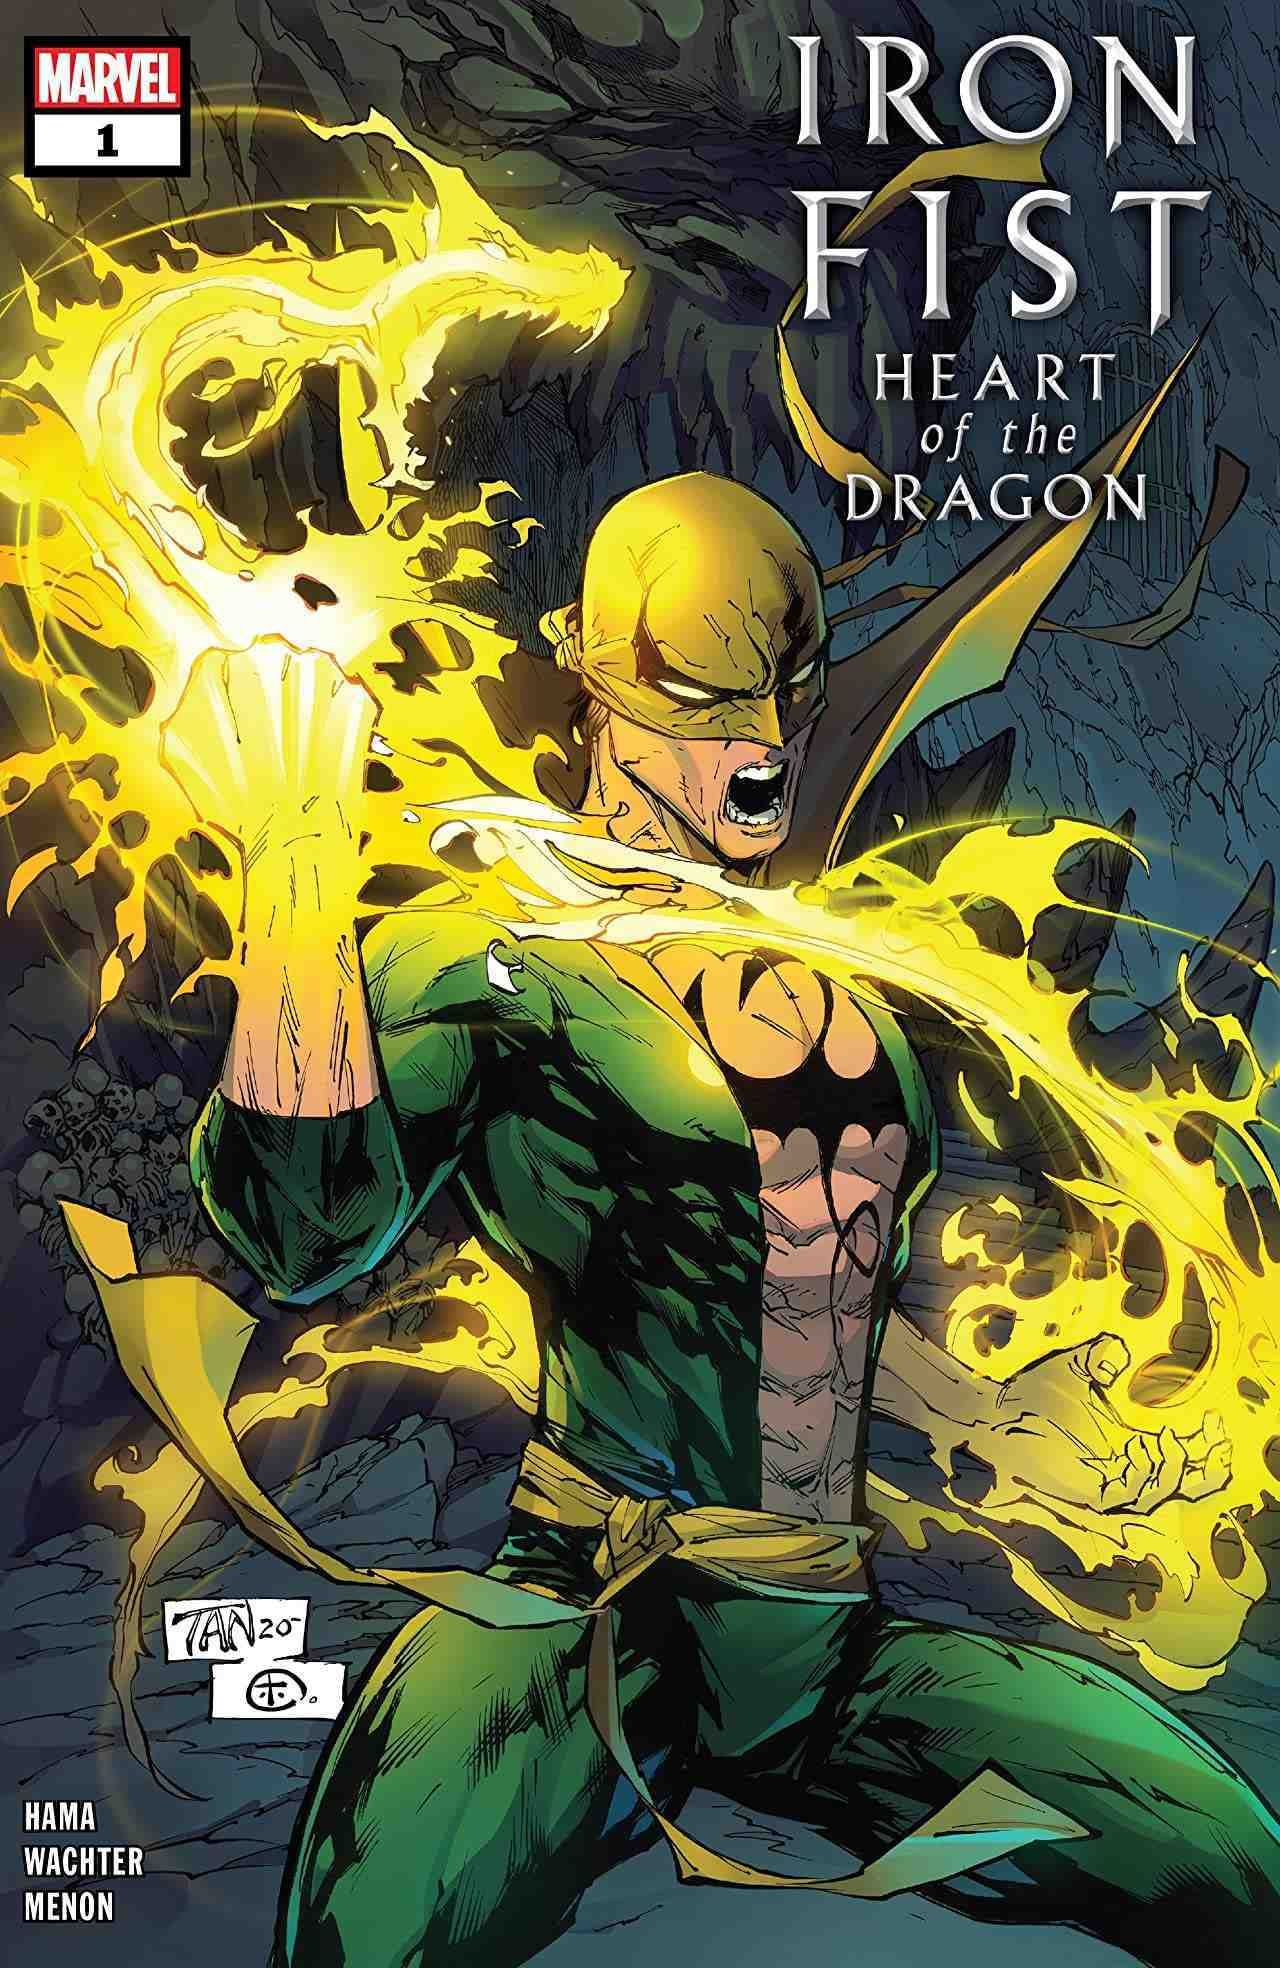 Iron Fist Heart of the Dragon #1